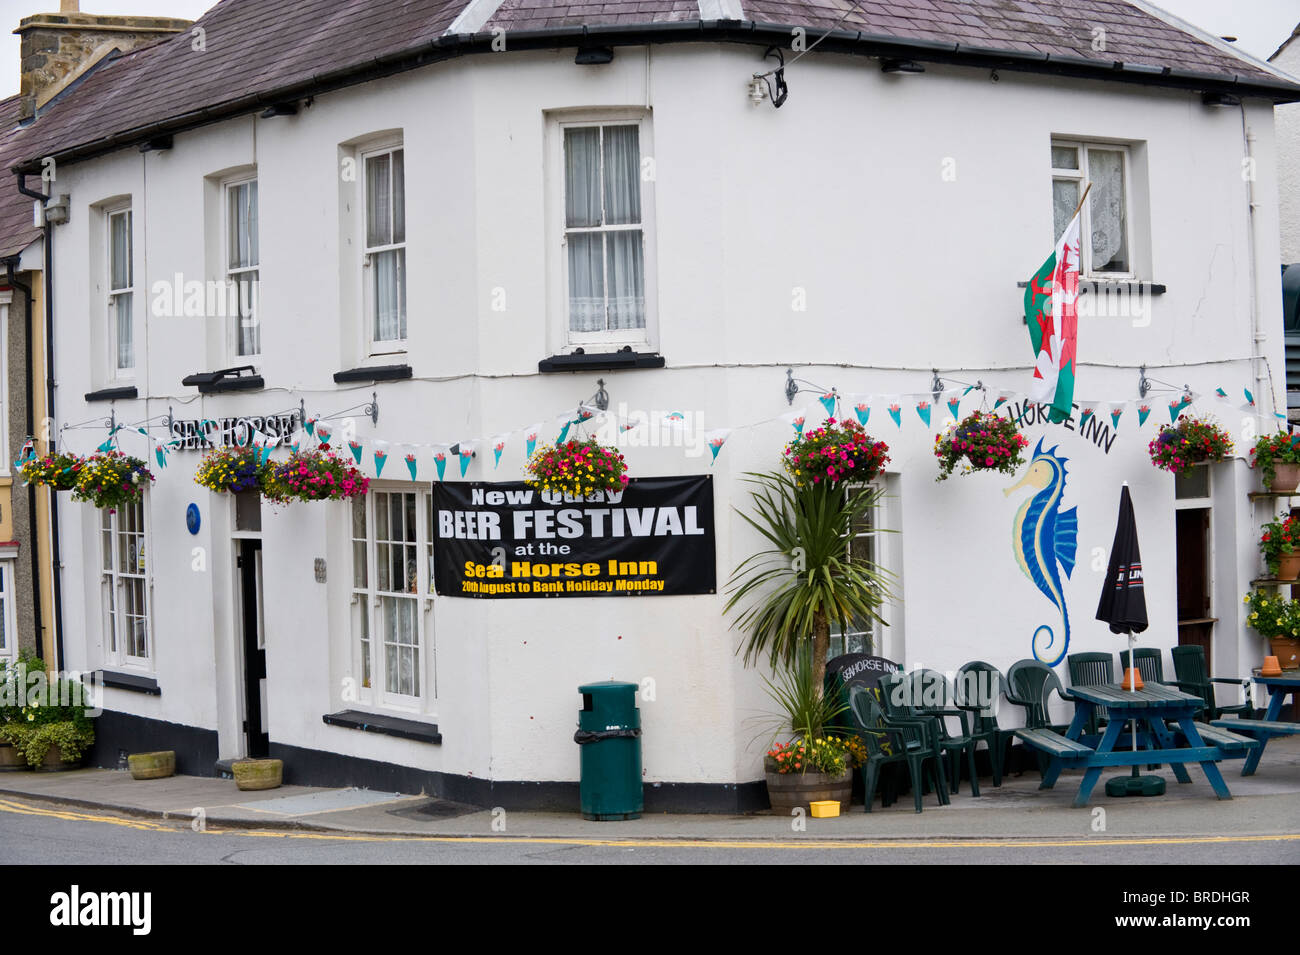 Exterior of the Sea Horse pub with banner for beer festival in the seaside resort of New Quay, Ceredigion, West - Stock Image